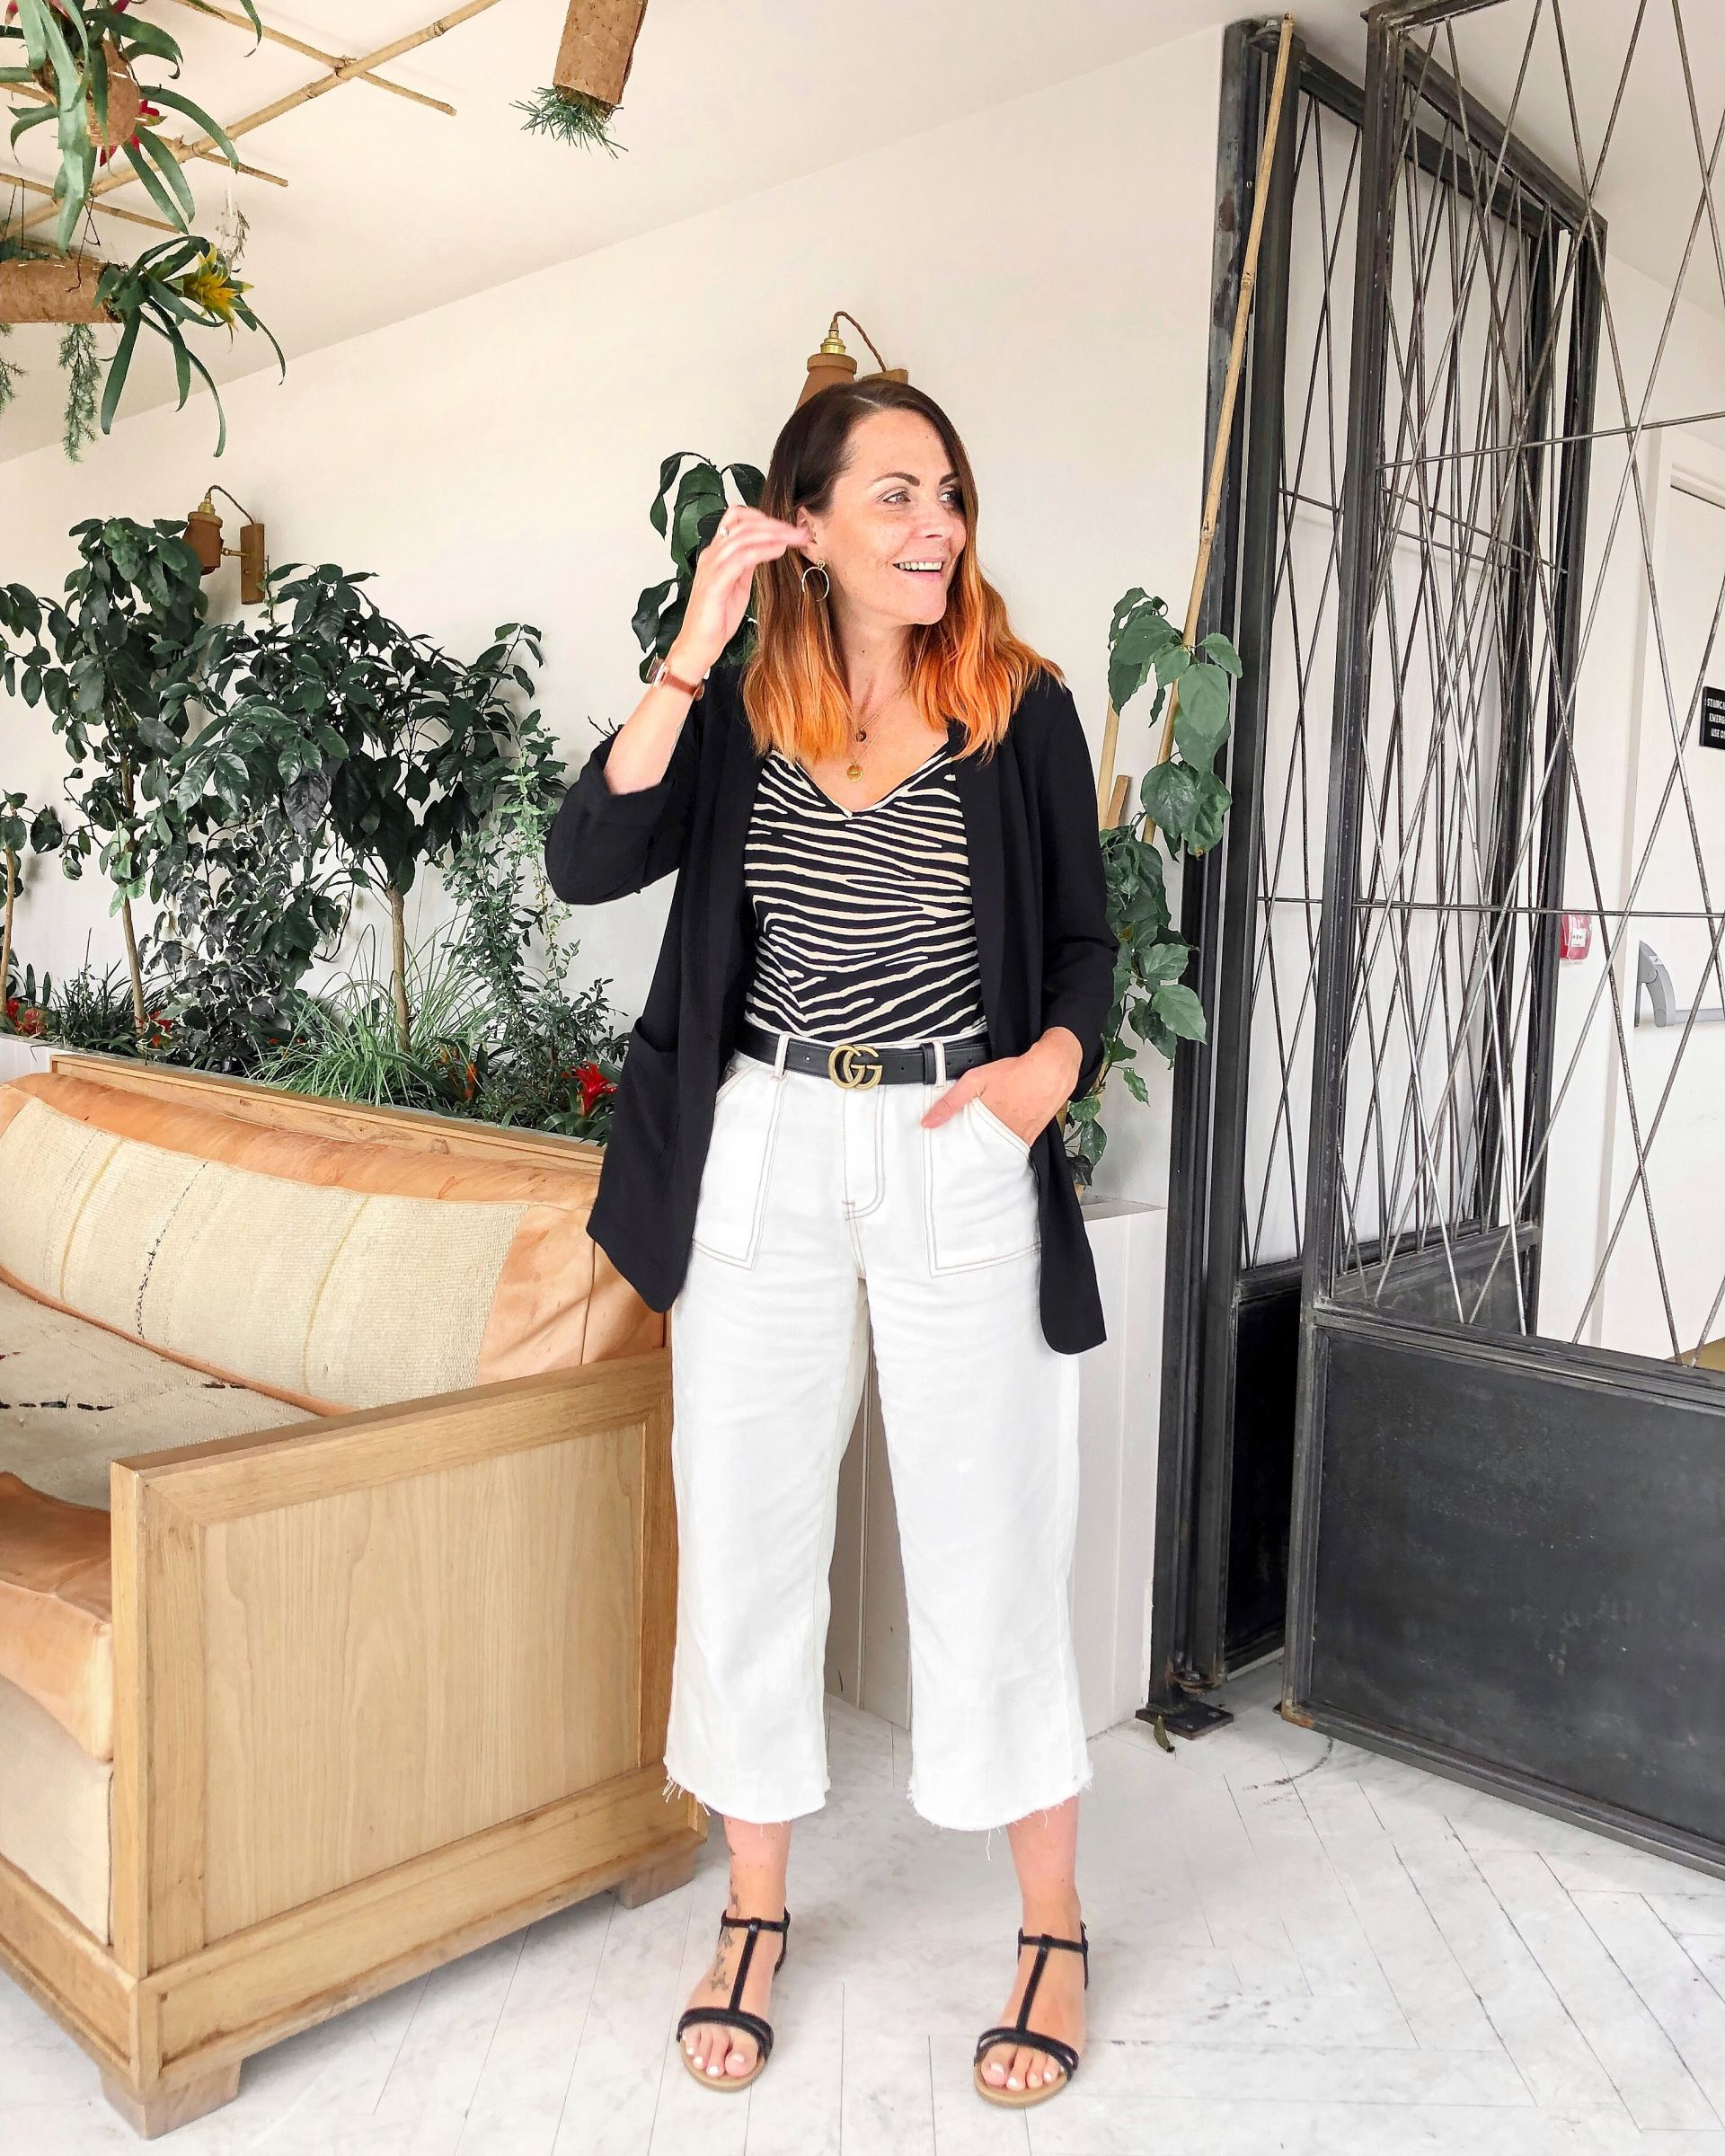 CREAM JEANS OUTFIT WITH BLAZER